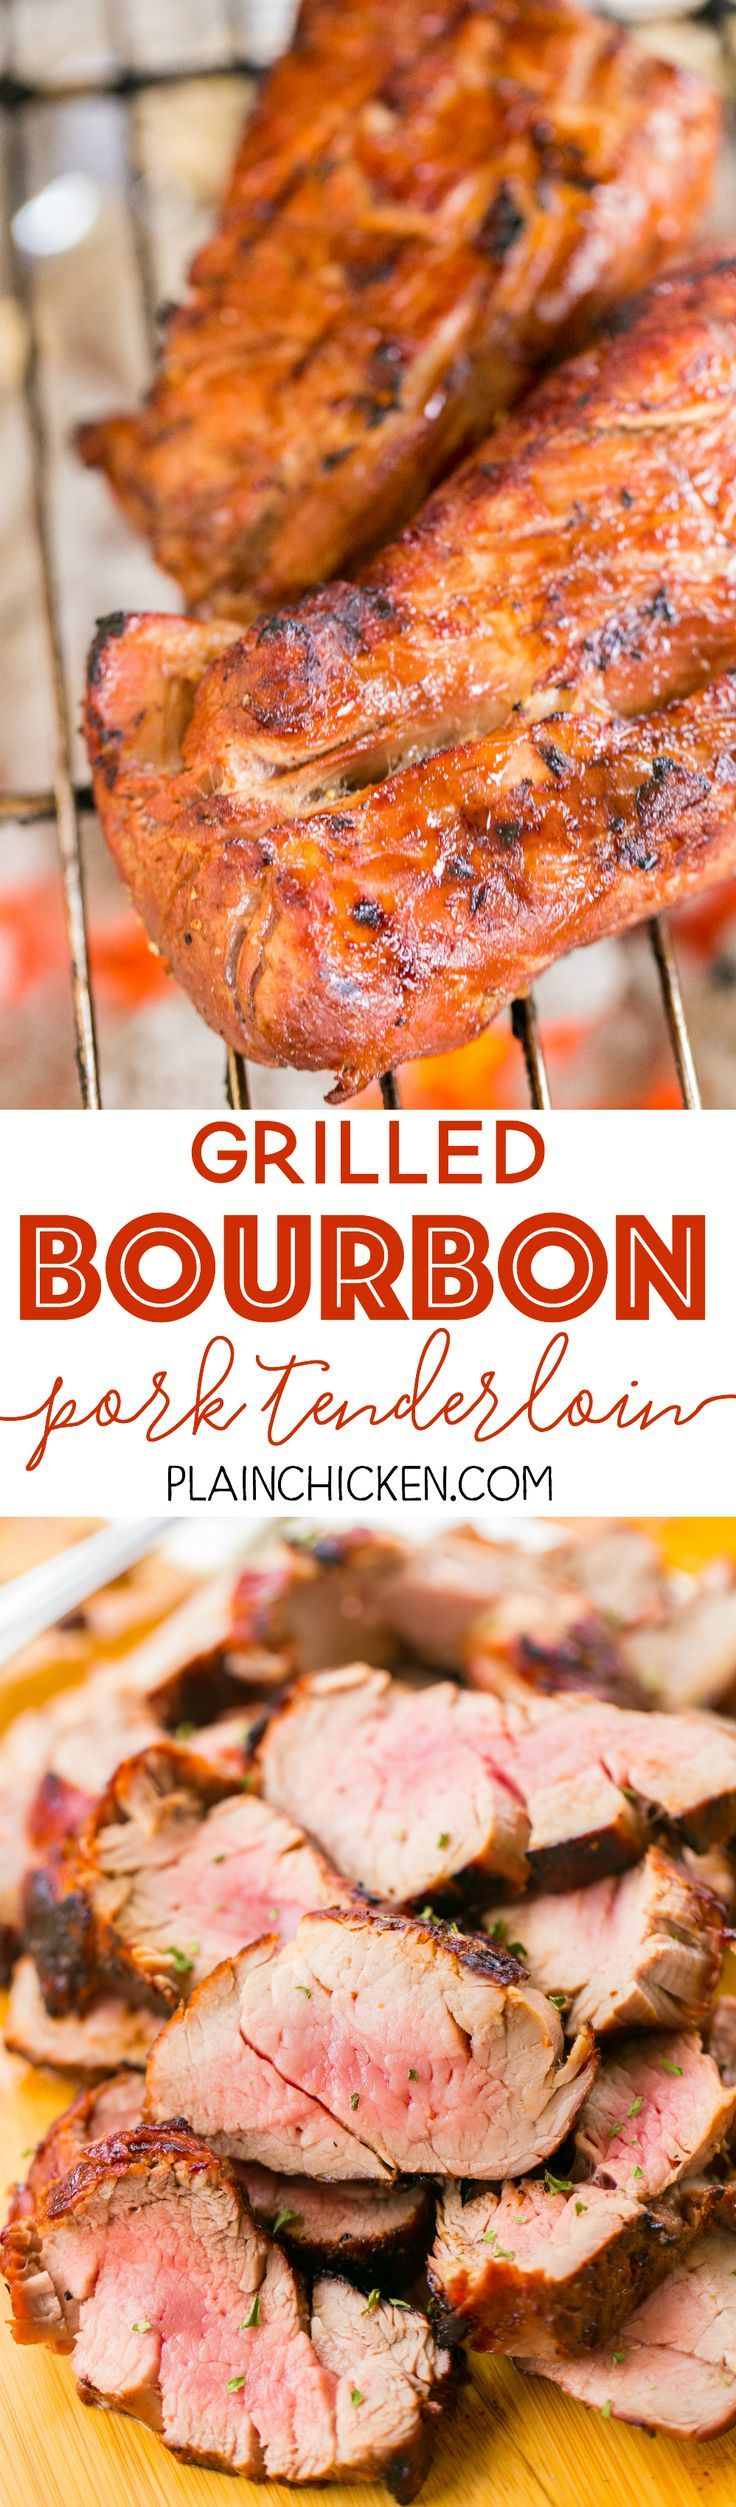 Grilled Bourbon Pork Tenderloin - better than any restaurant!!! We LOVED this pork! Pork tenderloins marinated in bourbon, brown sugar, soy sauce, Worcestershire, lemon juice, and garlic. Can use marinade on chicken and steak too. Everyone LOVES this easy